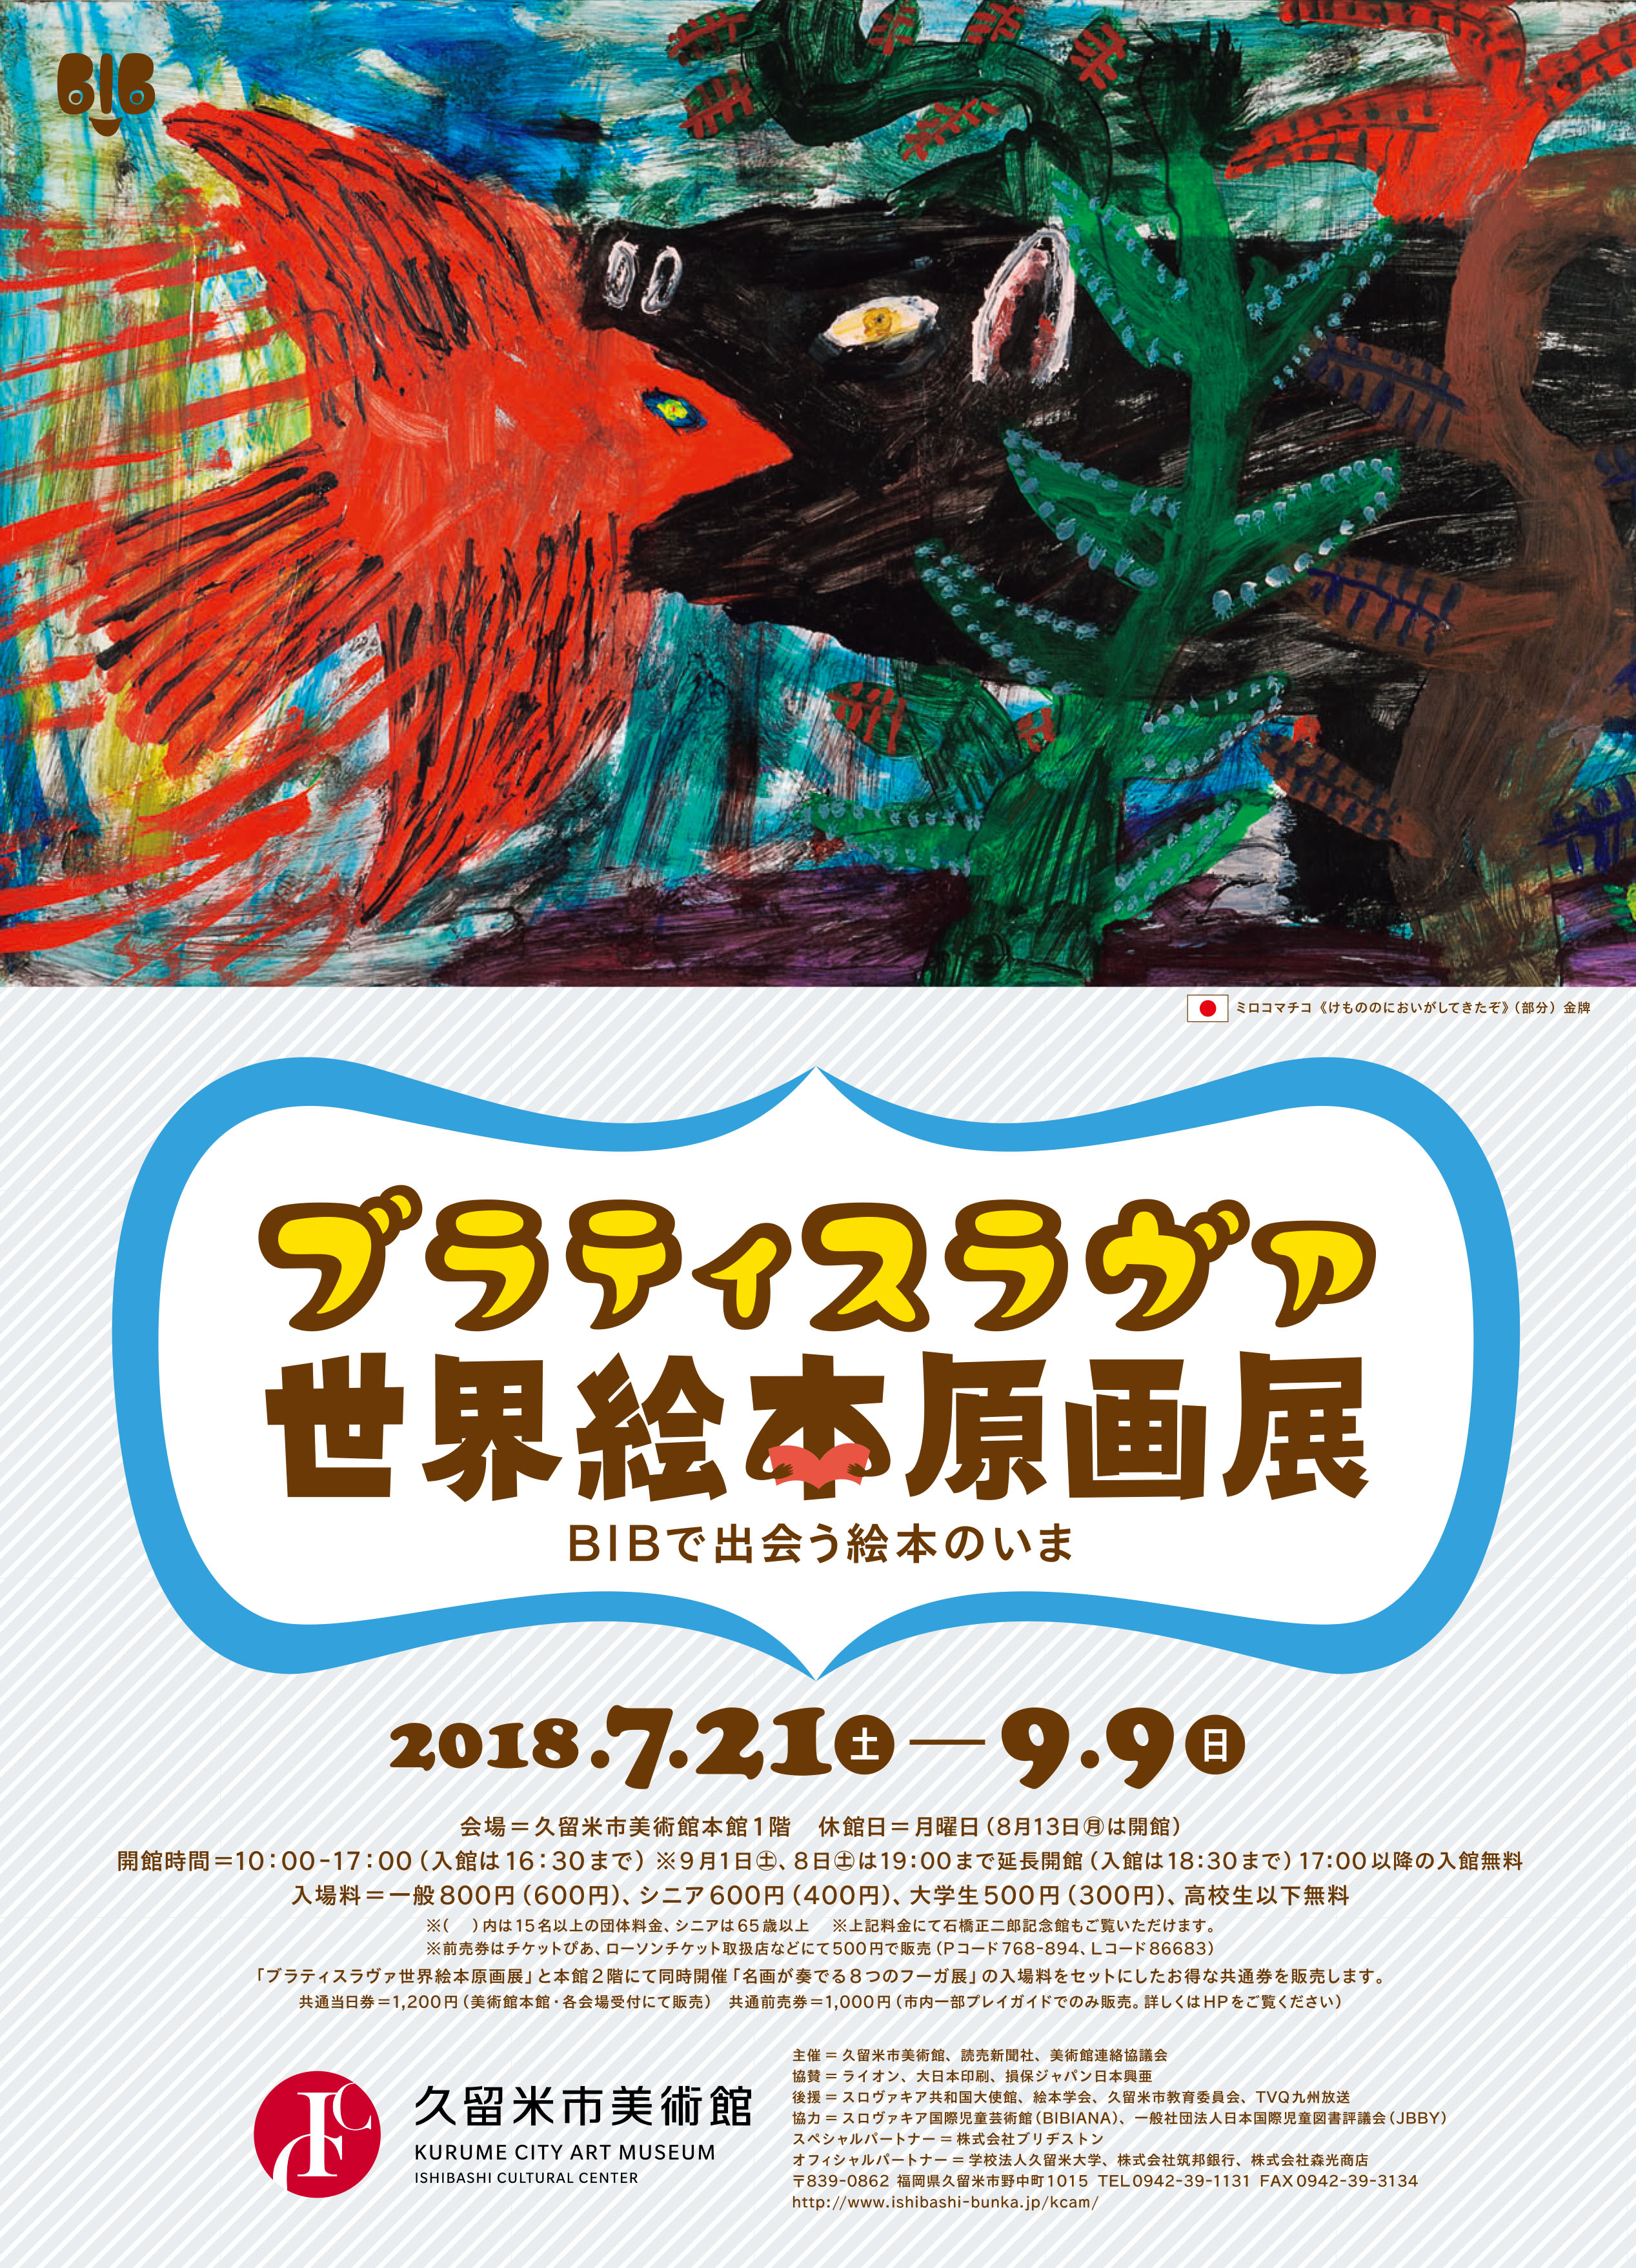 26th Biennial of Illustrations Bratislava in Japan-Encounter the Picture Book World of Today Through BIB